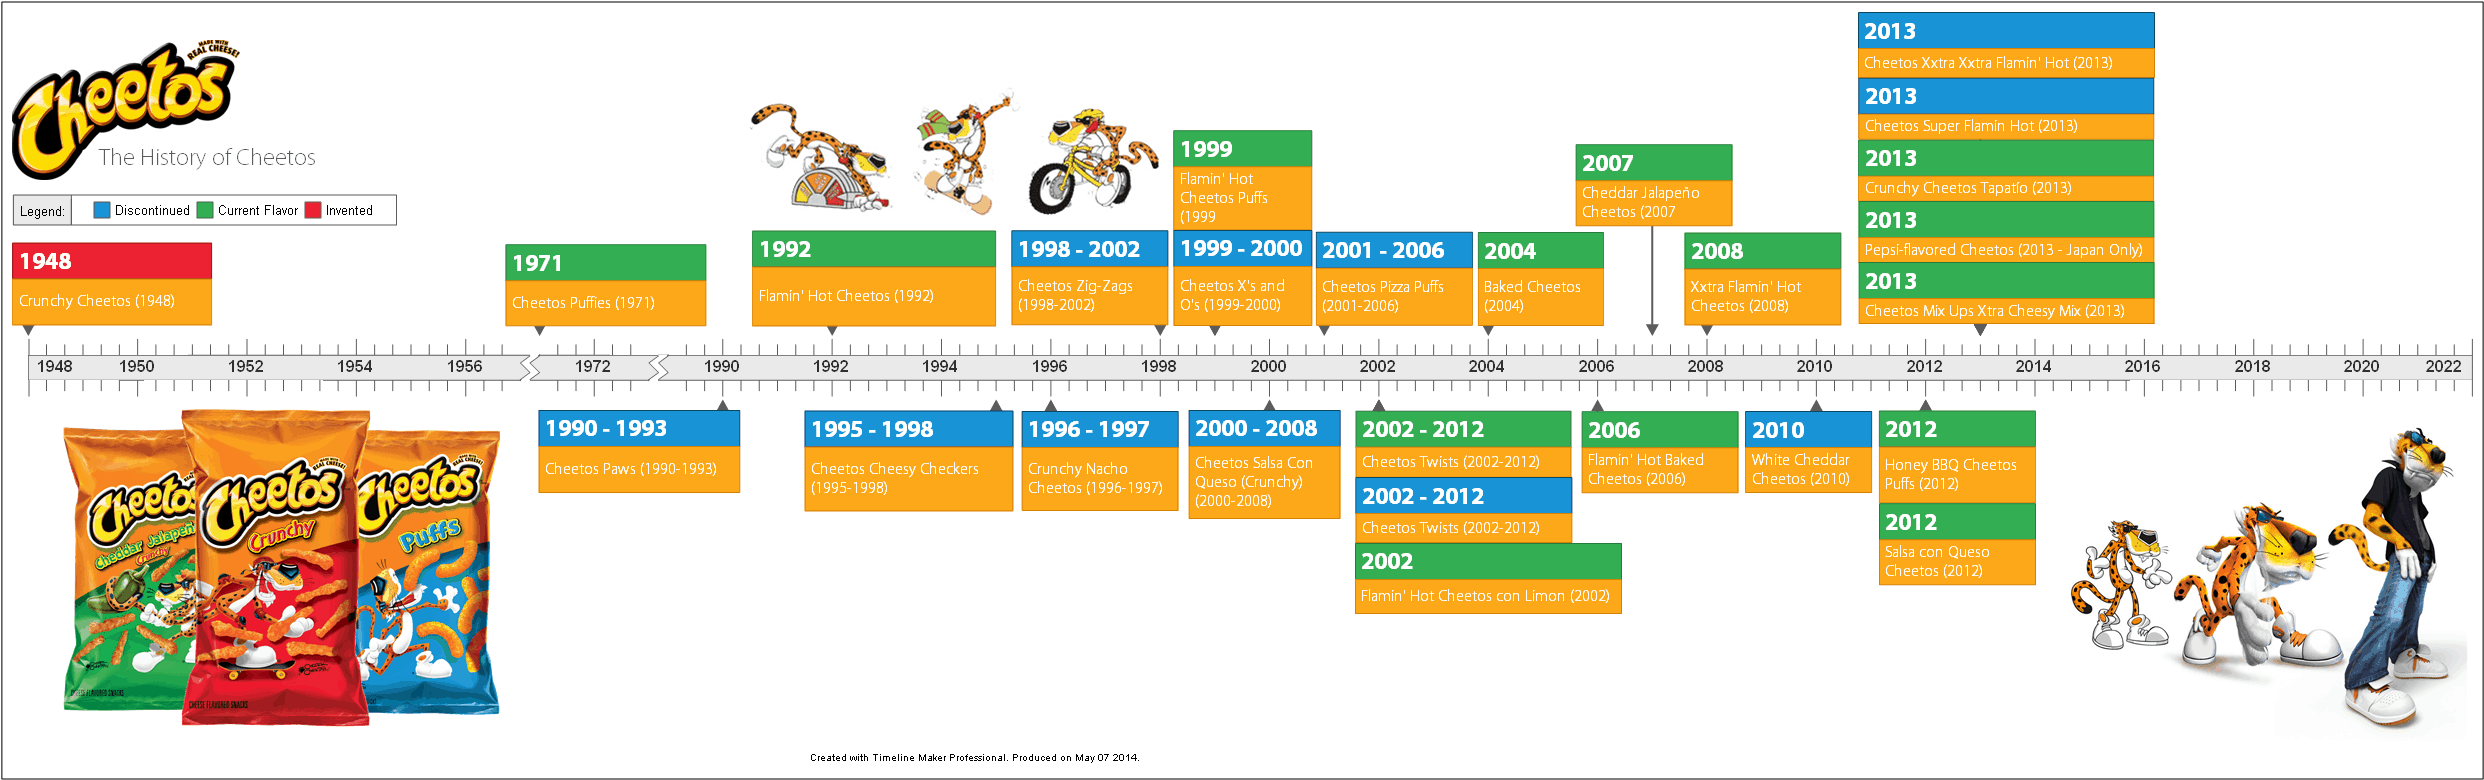 The History Of Cheetos Timeline